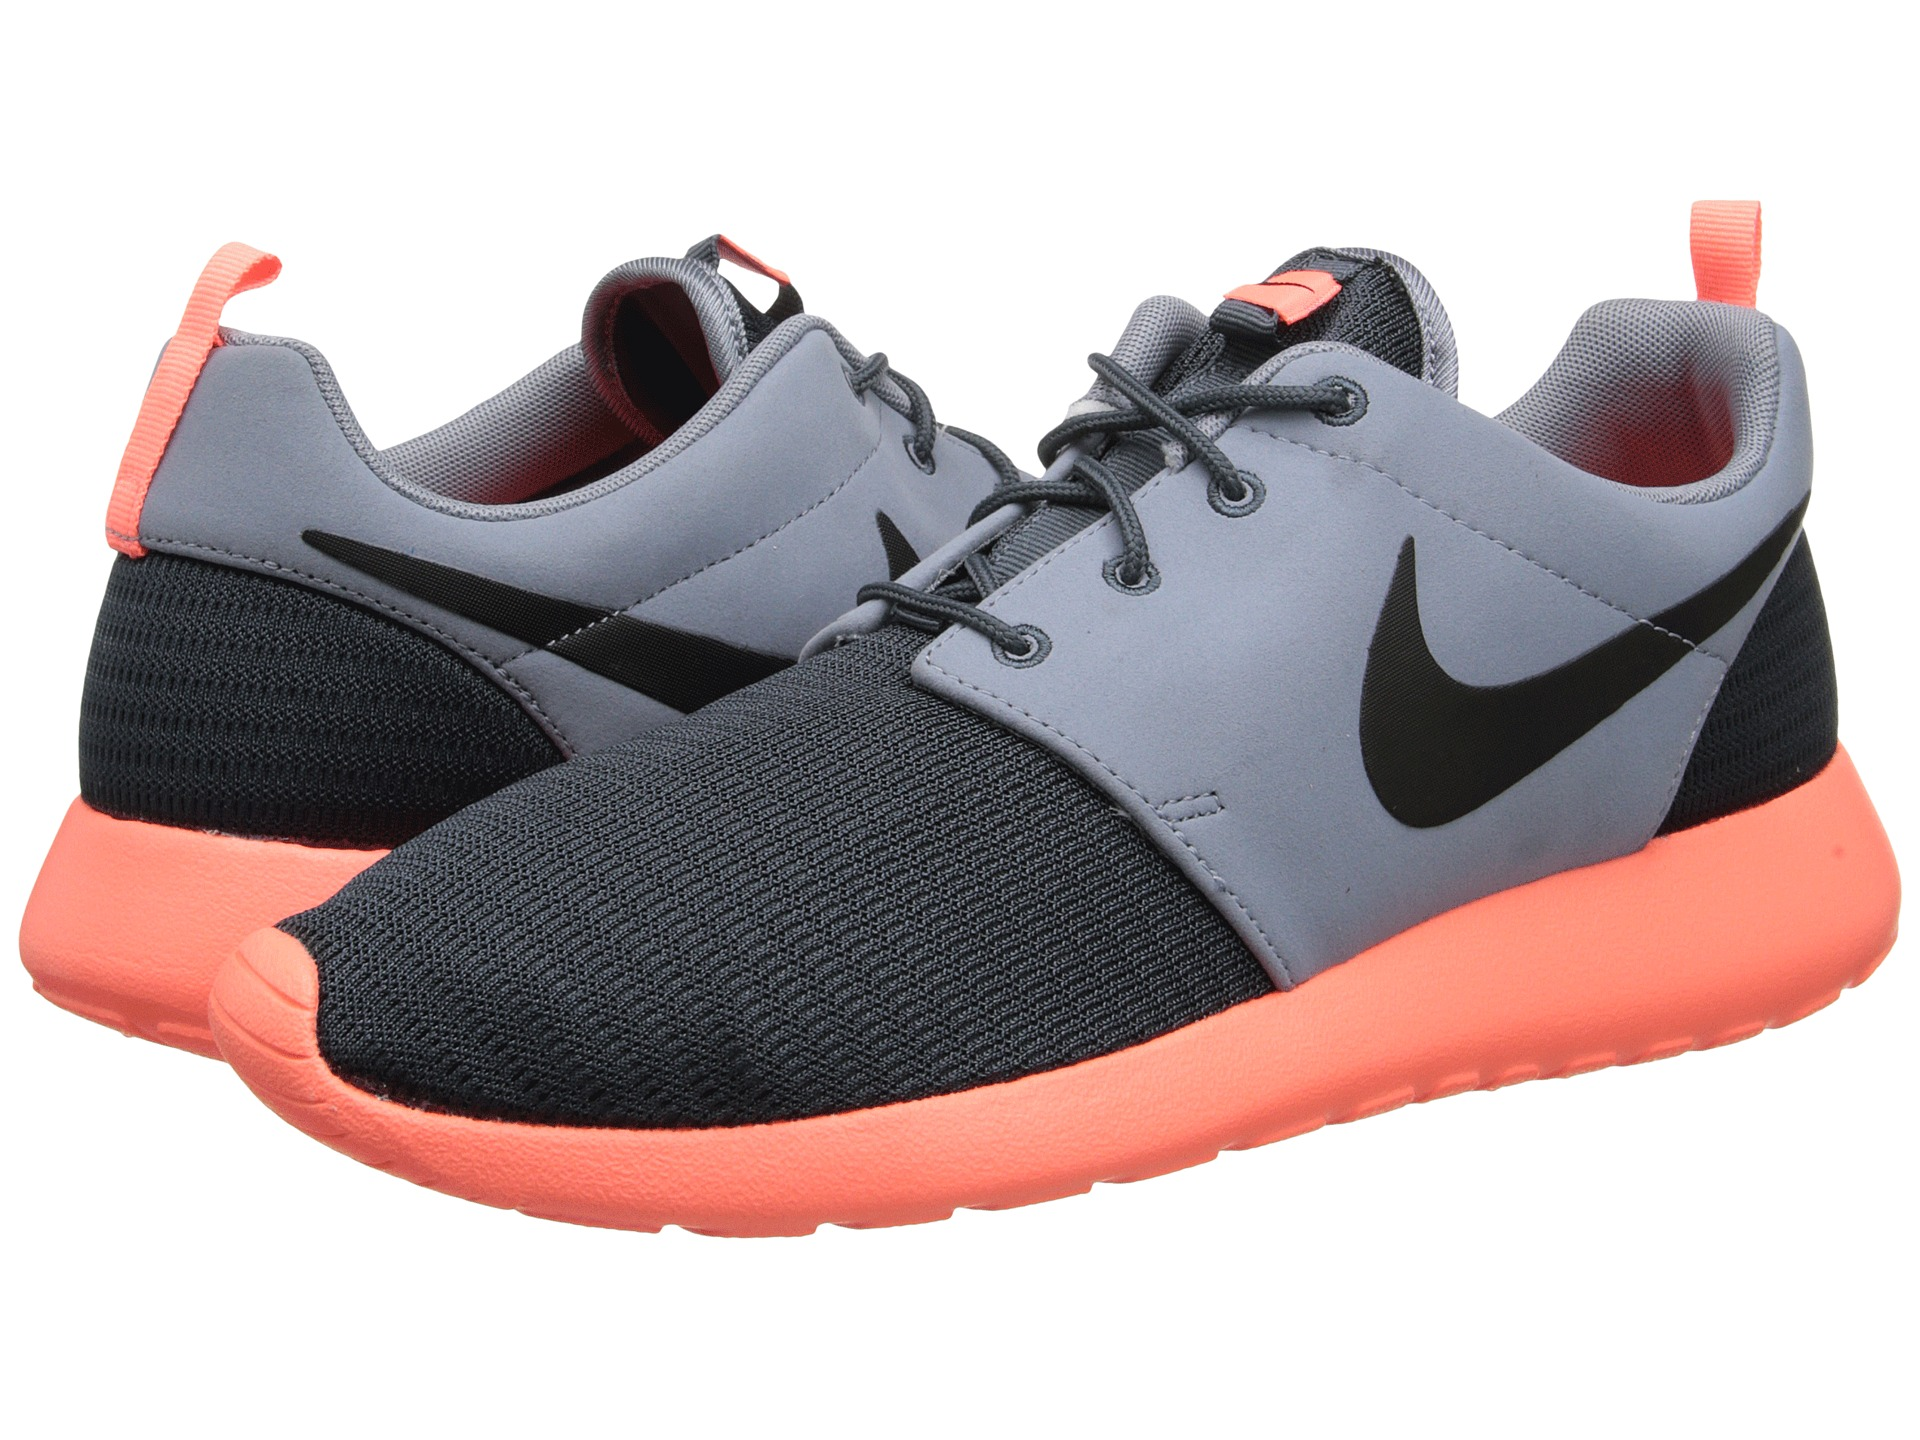 brand new 364b6 cd877 Nike Roshe Run Dk Magnet Grey Magnet Grey Bright Mango Black